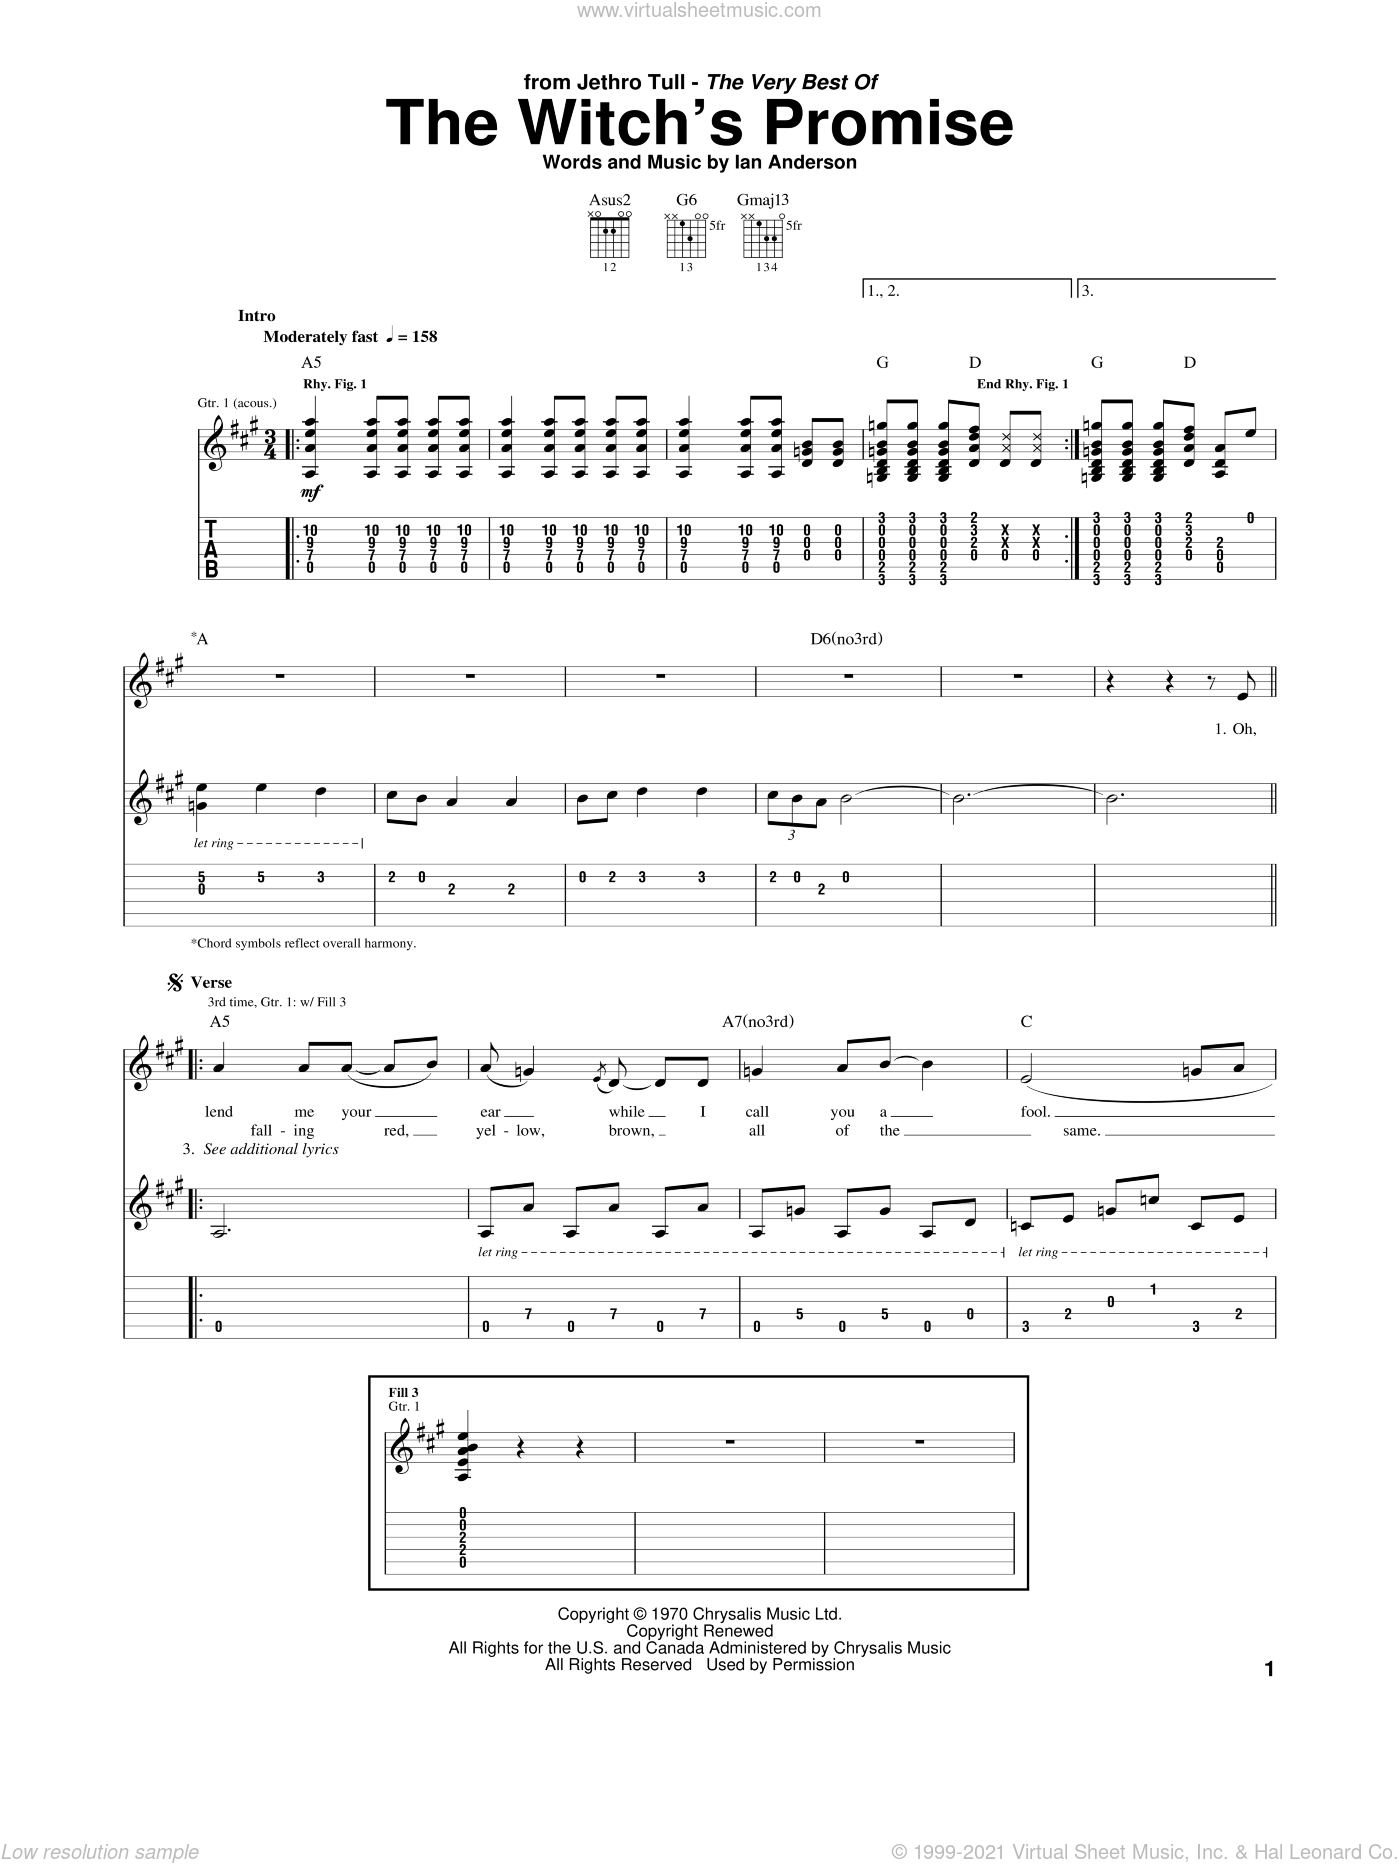 The Witch's Promise sheet music for guitar (tablature) by Jethro Tull and Ian Anderson, intermediate skill level